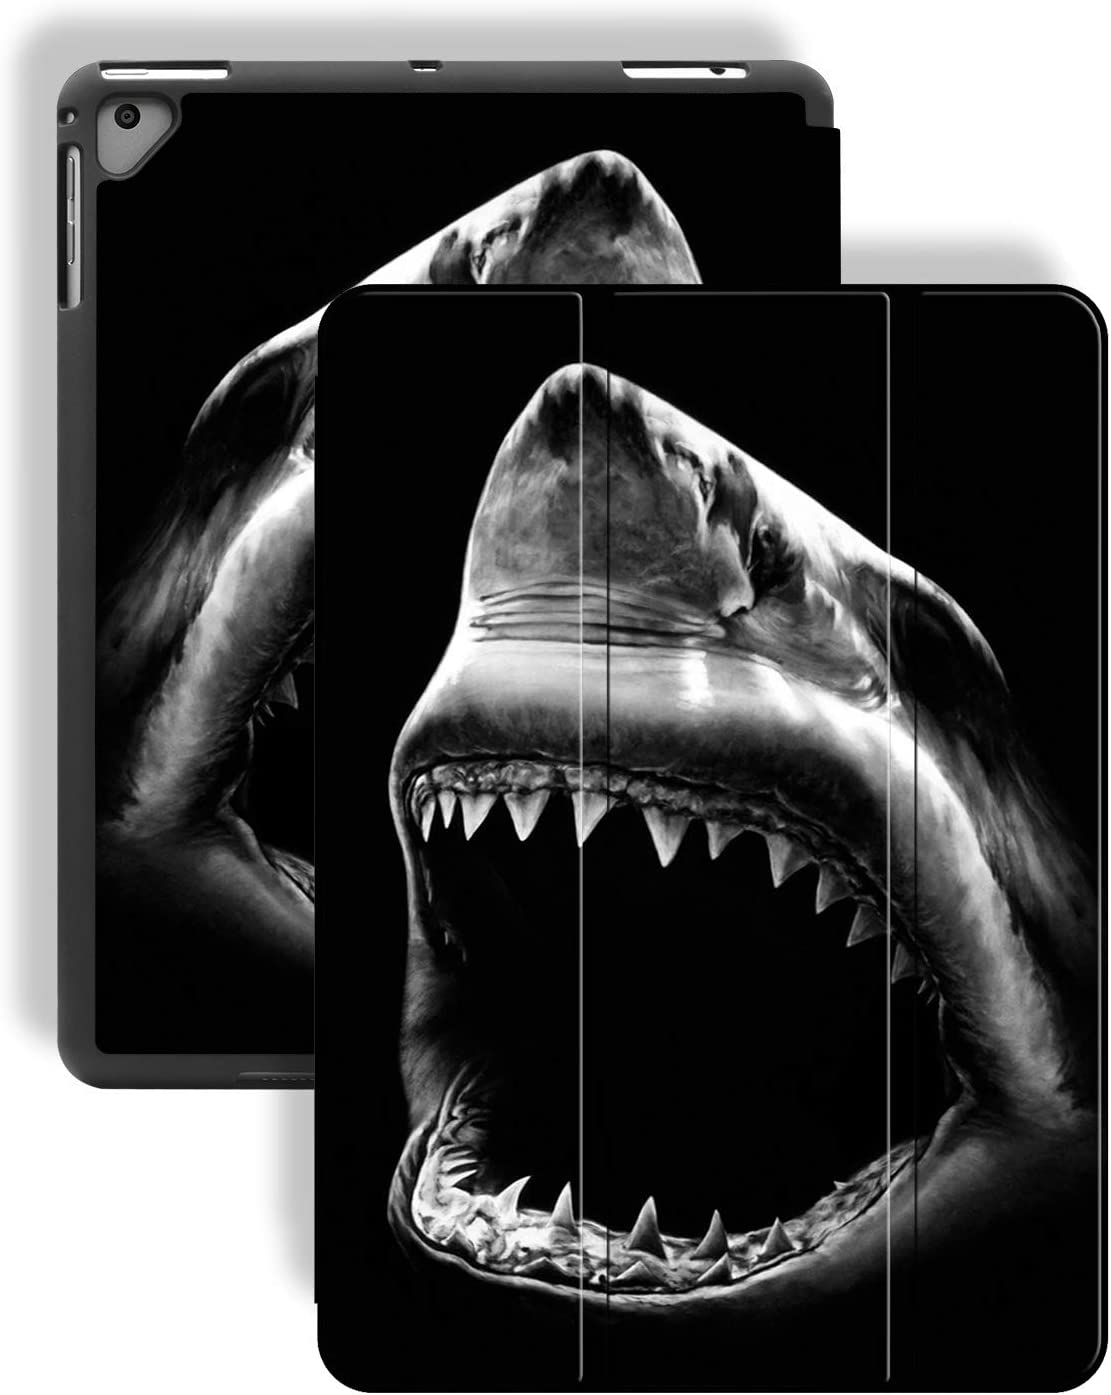 iPad 9.7 2018/2017/iPad Air 2 Case,Big Black and White Shark Pattern PU Leather Slim Soft TPU Back with Pencil Holder Cover for iPad 9.7 Inch 5th/6th Generation(Auto Wake/Sleep)